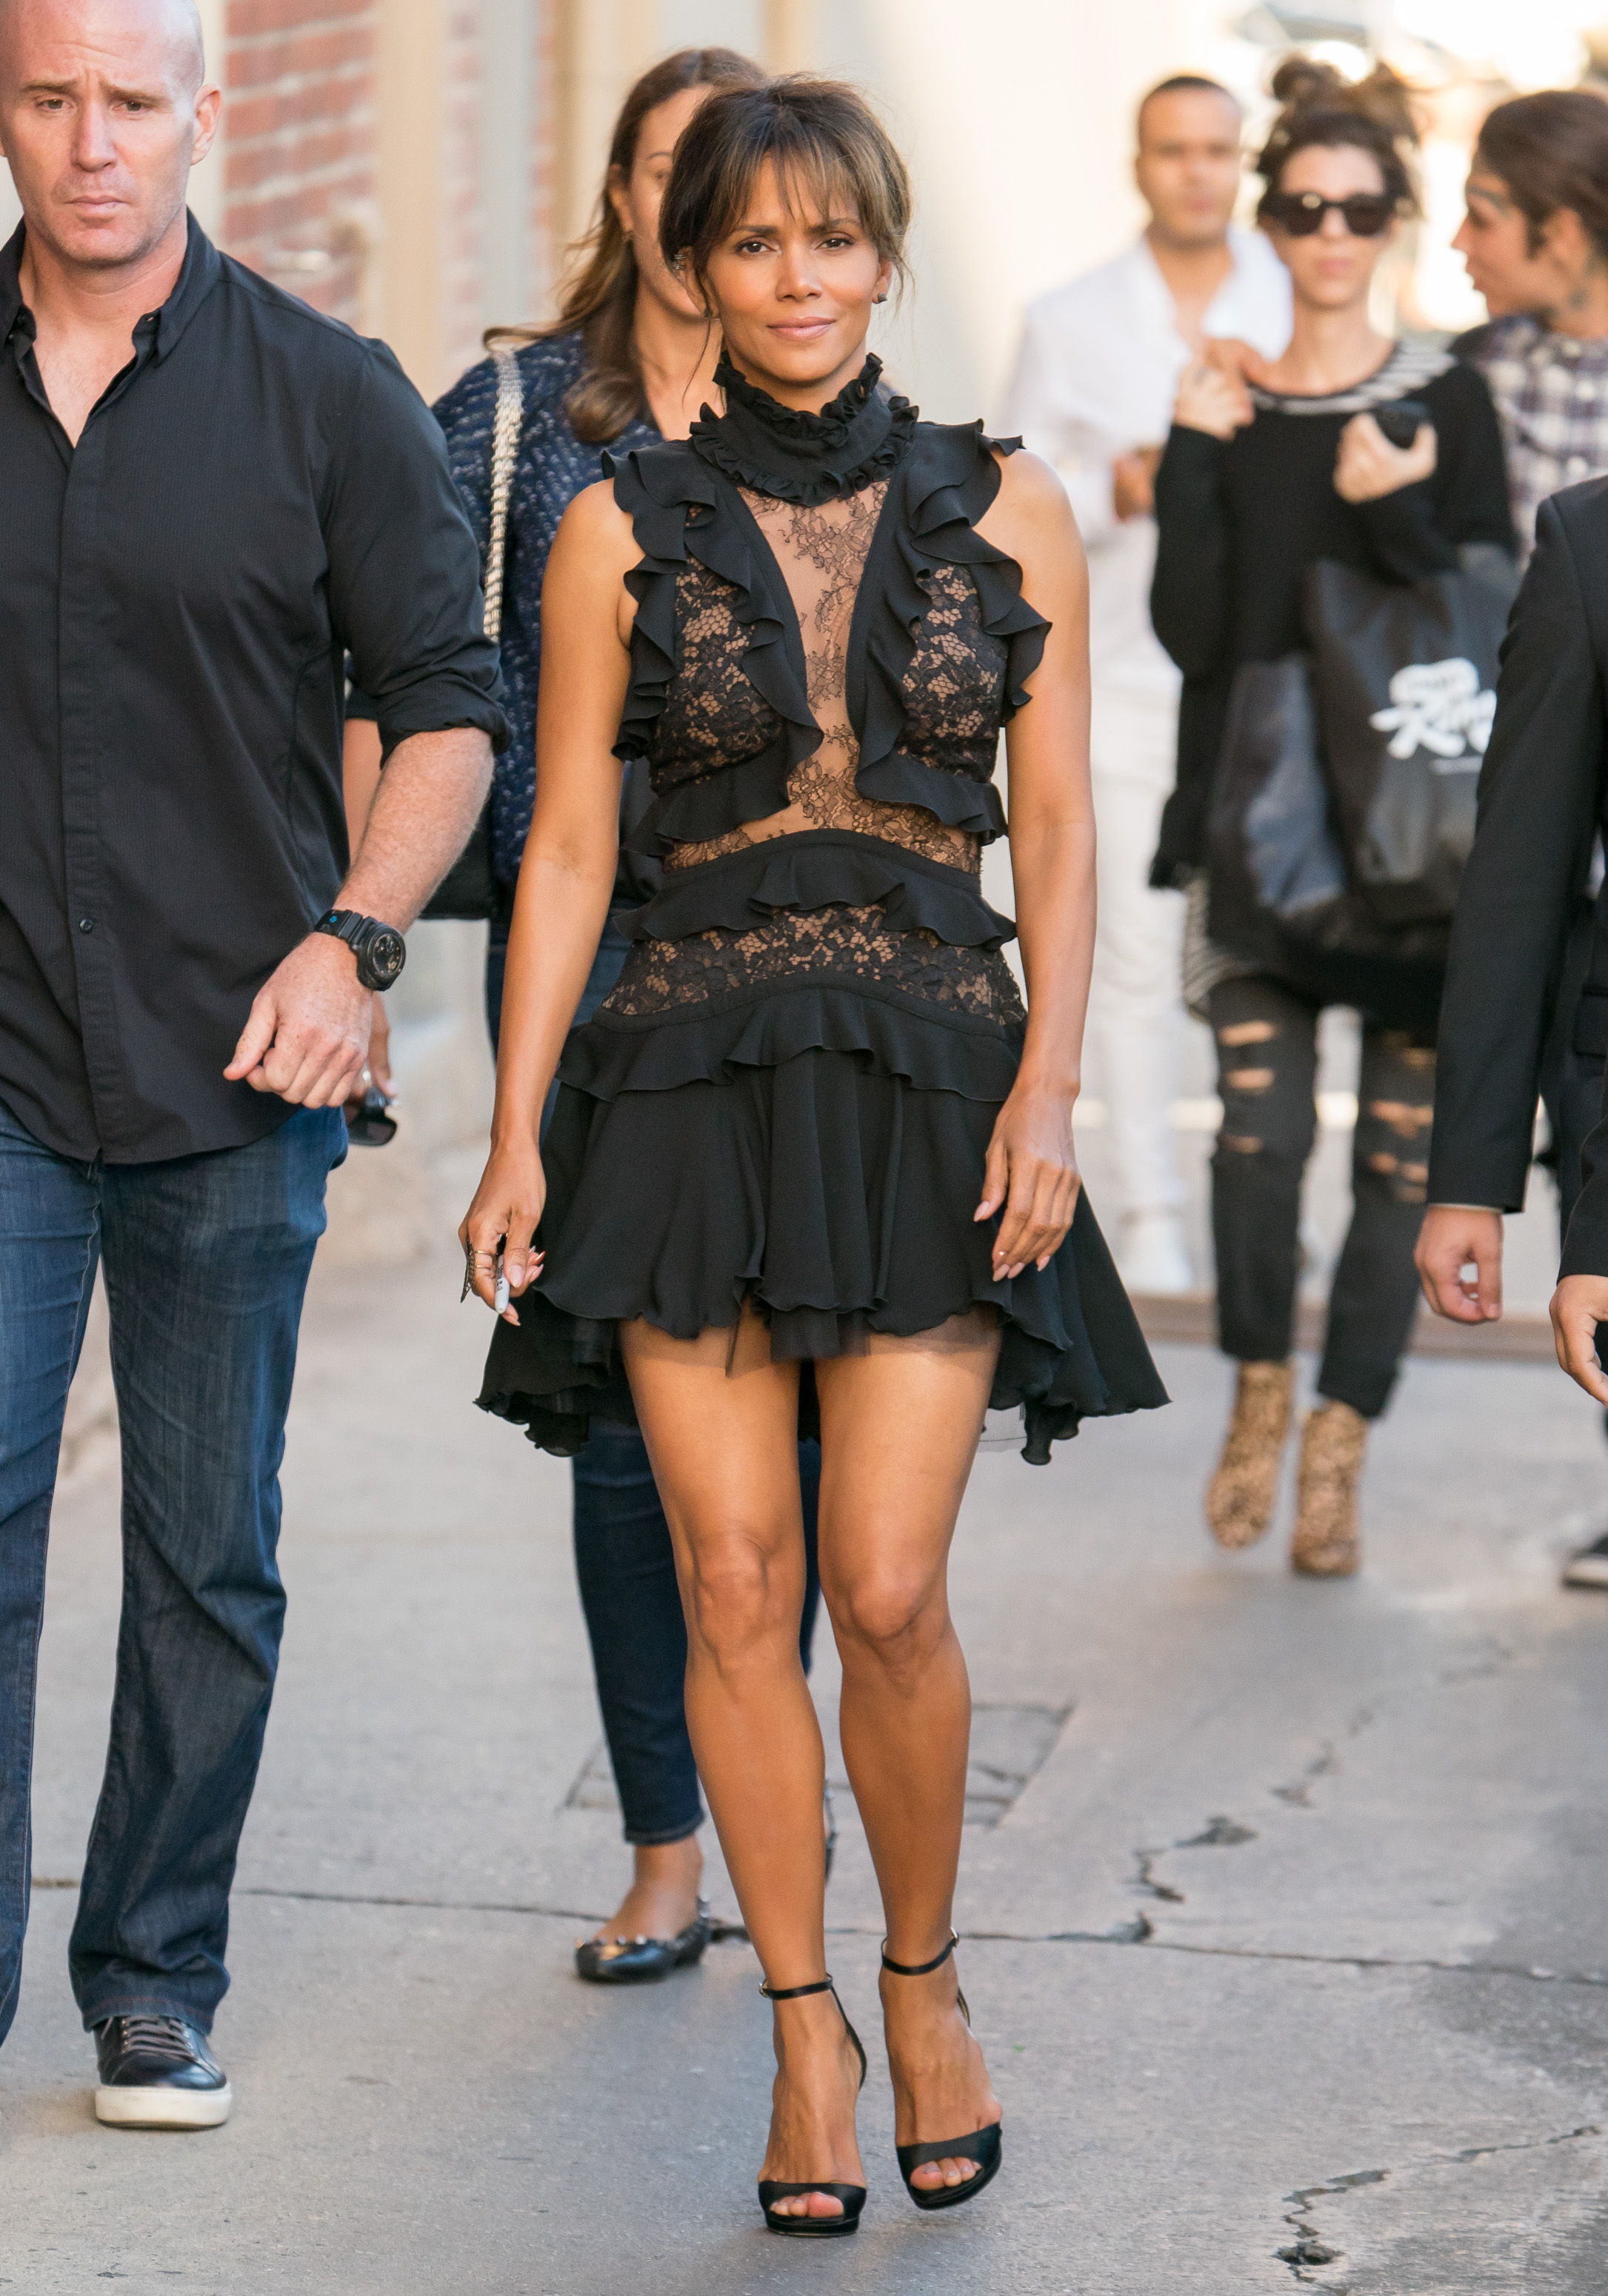 Halle Berry is seen at 'Jimmy Kimmel Live' in Los Angeles, California. <P> Pictured: Halle Berry <B>Ref: SPL1585564  210917  </B><BR/> Picture by: RB/Bauergriffin.com<BR/> </P><P>